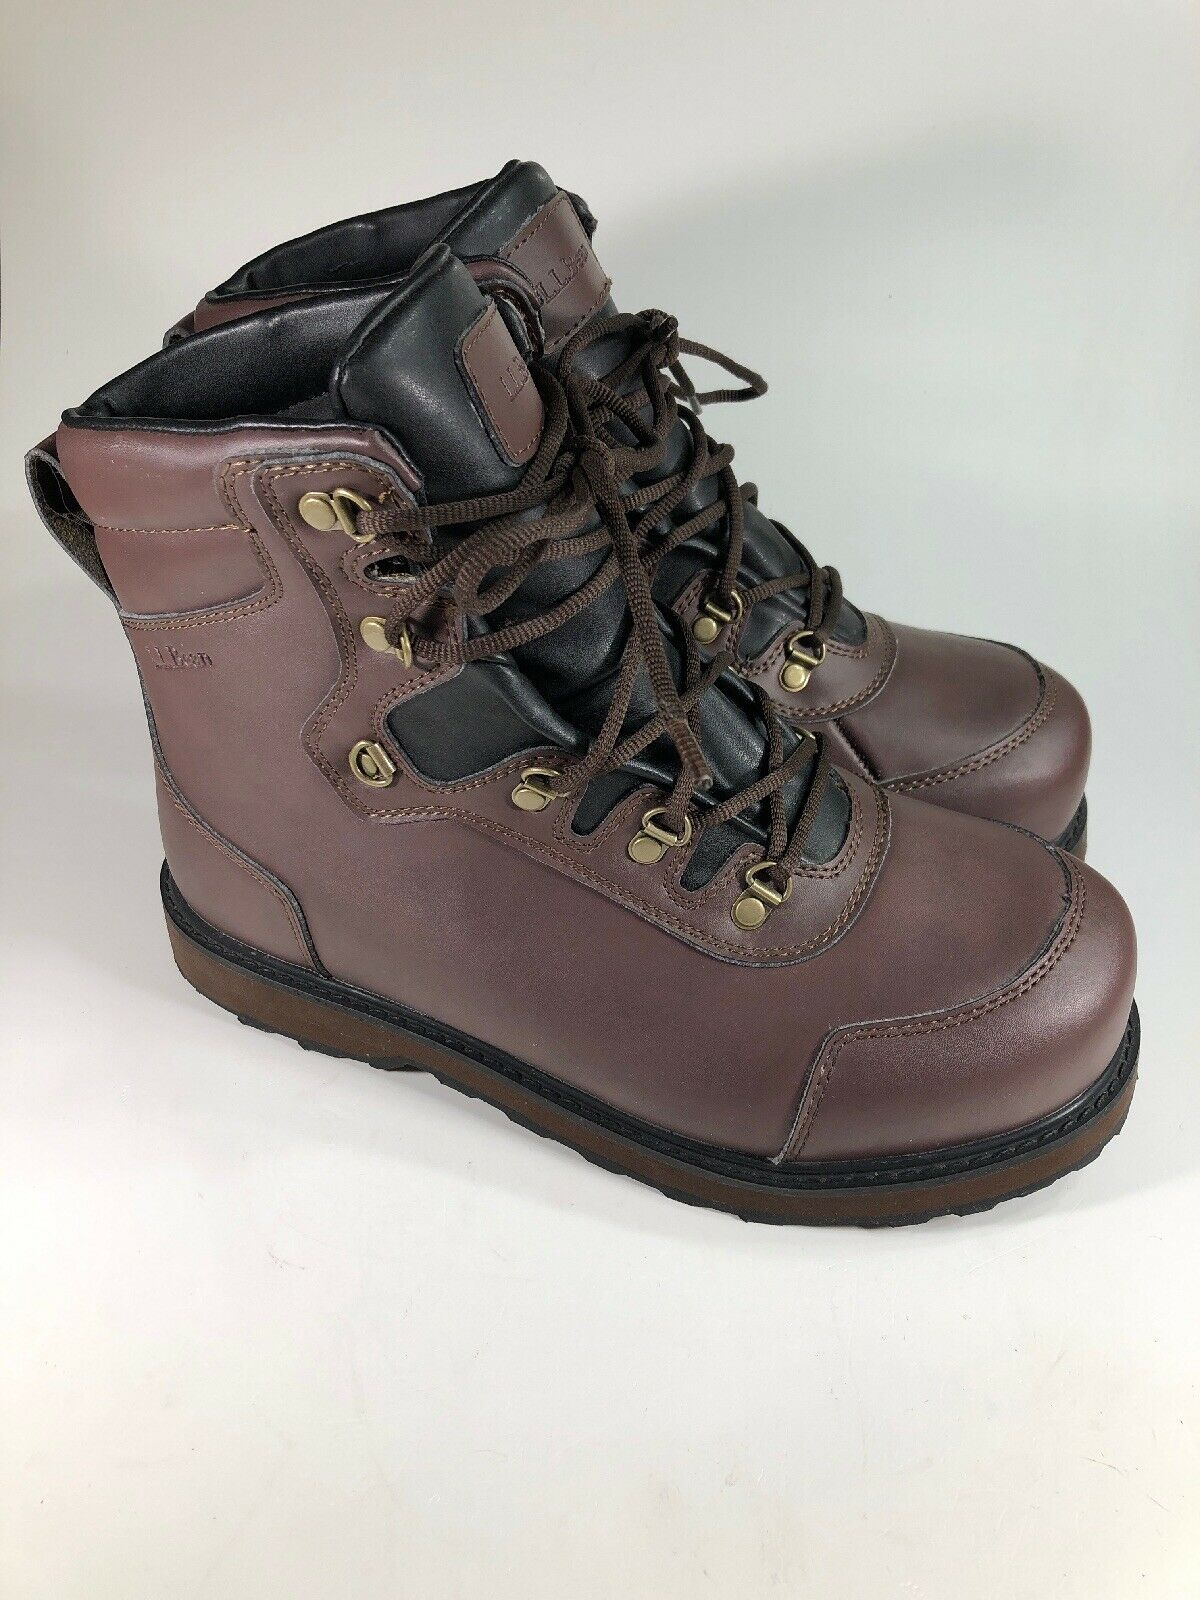 sports shoes 27d81 231b3 LL Bean Nearly New Pleasent River Wading Boots Brown Lace Up Mens Size 9 M